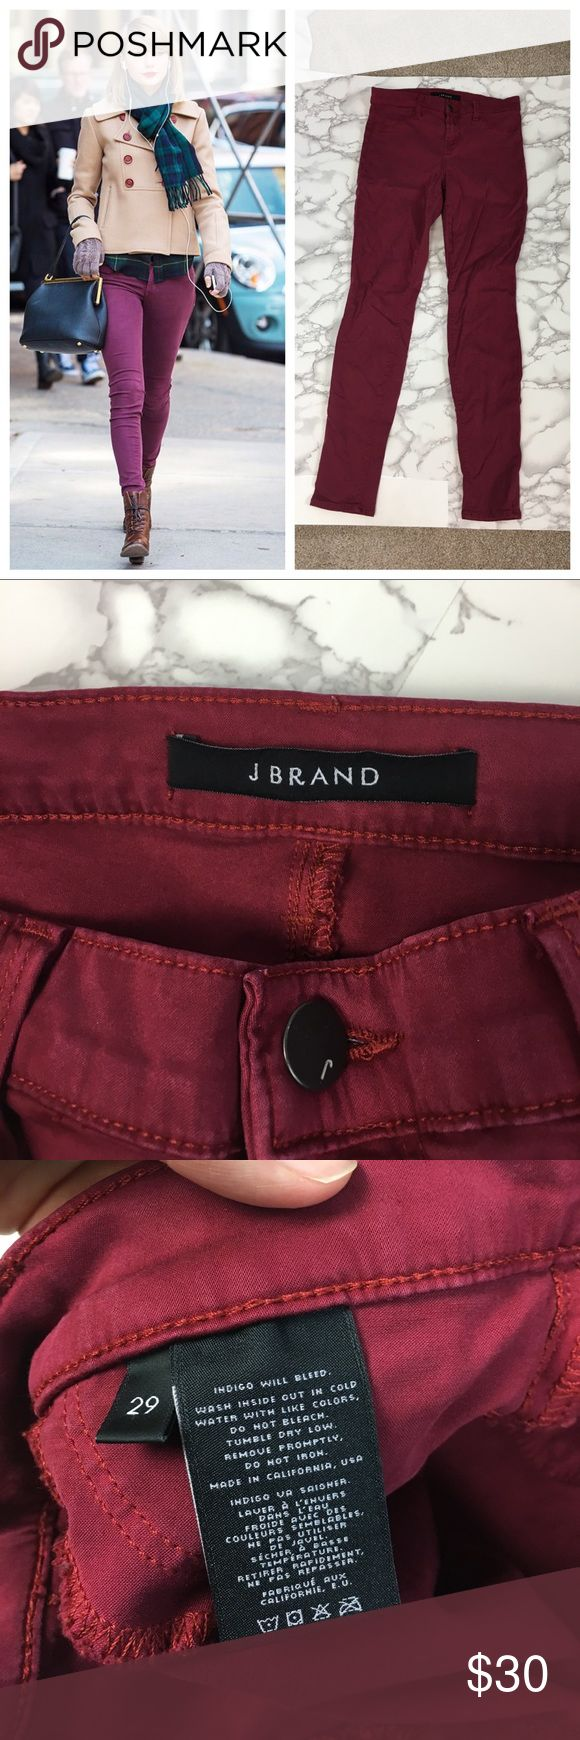 Cute J Brand Red Gaya Super Skinny Jeans - 29 Super cute for Fall! Similar style worn on Taylor Swift. J Brand, size 29. Gently used with some light wear throughout and could use an ironing. 2jun17cdand J Brand Jeans Skinny